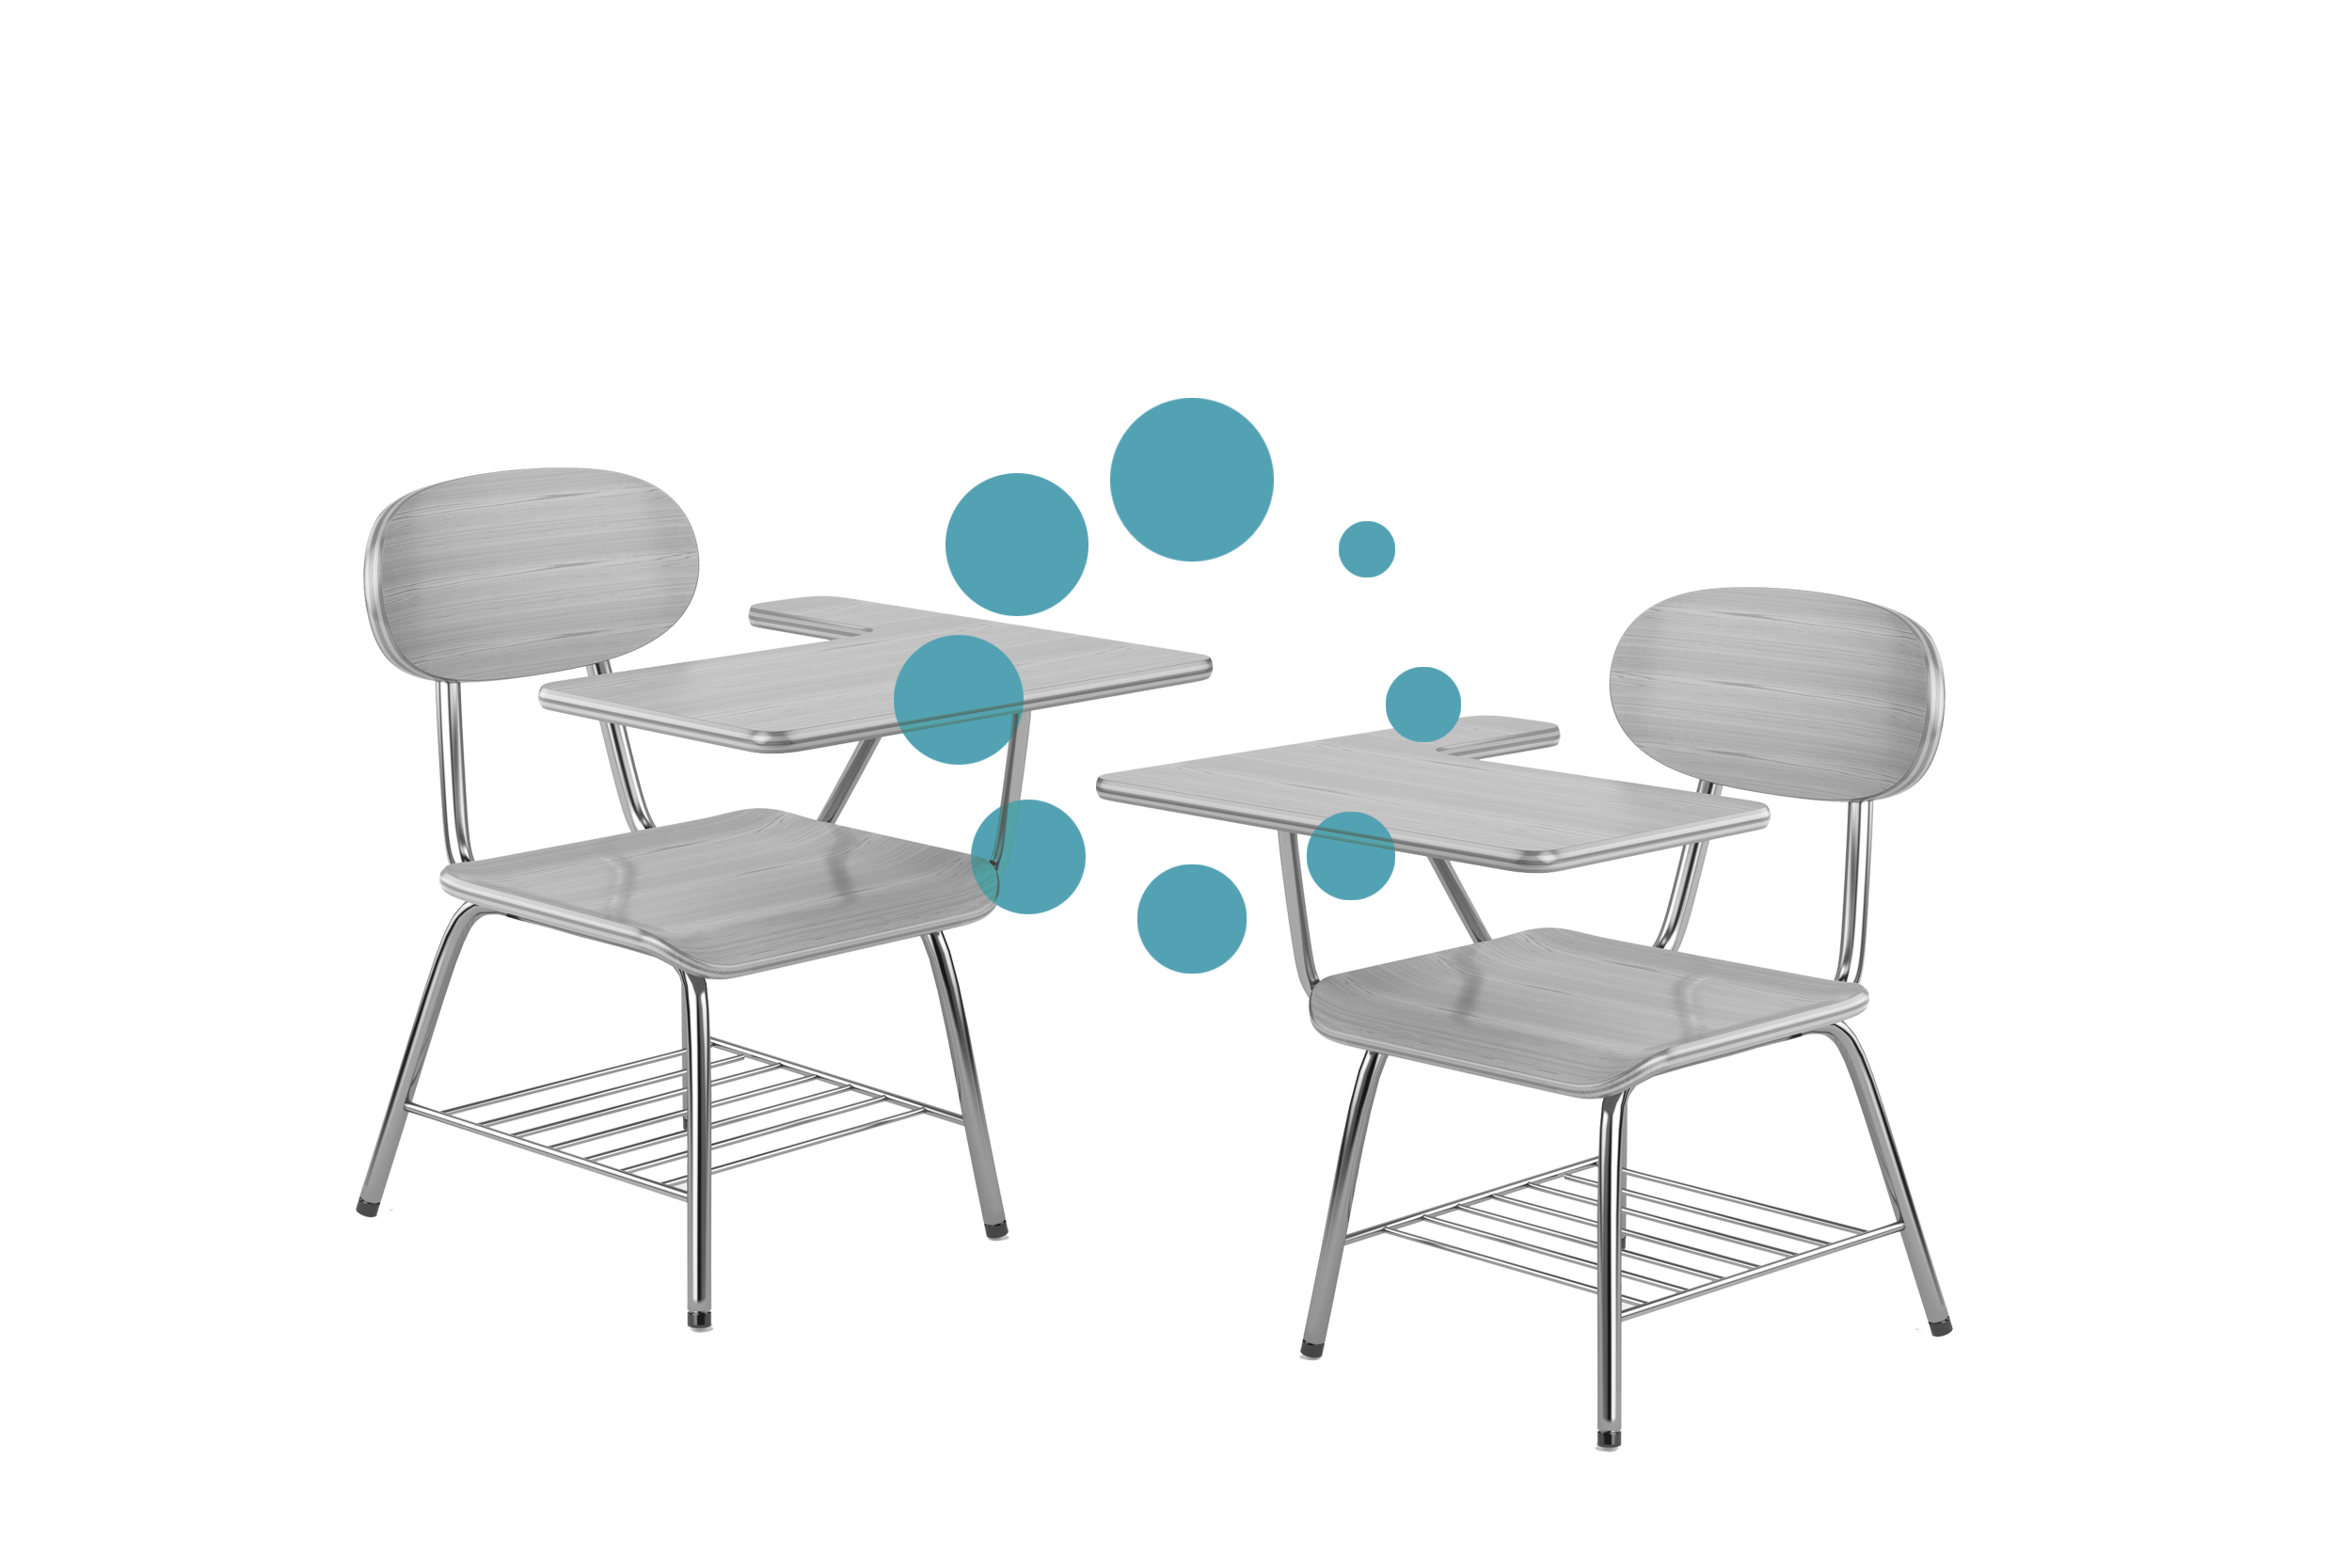 two empty desks with bubbles around them